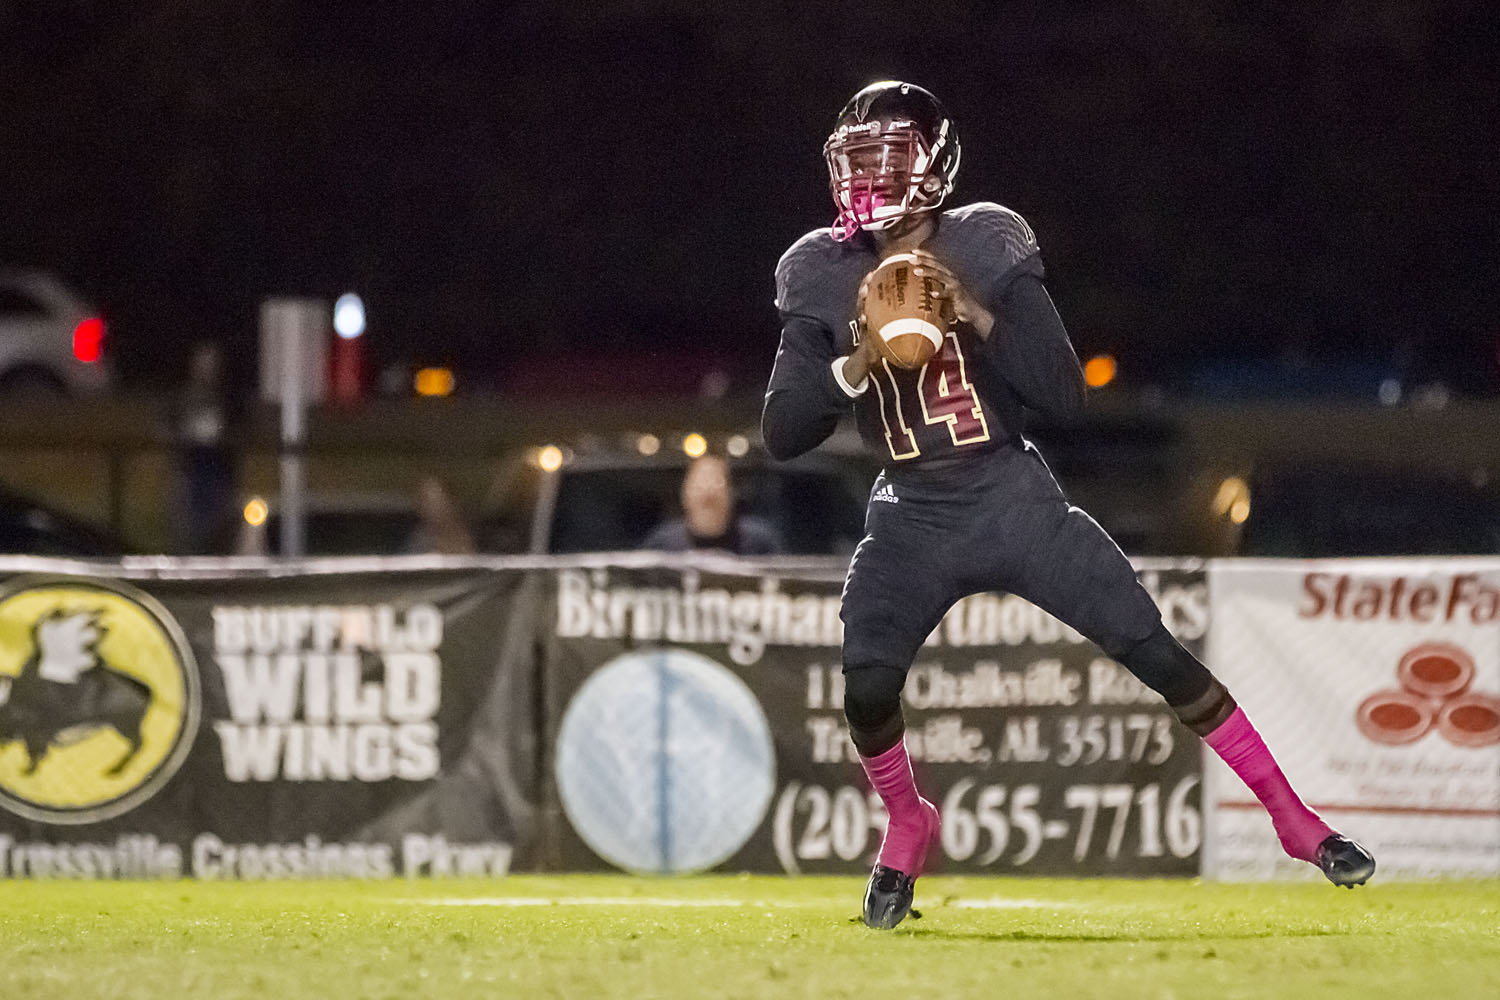 Pinson Valley survives Carver to earn playoff spot